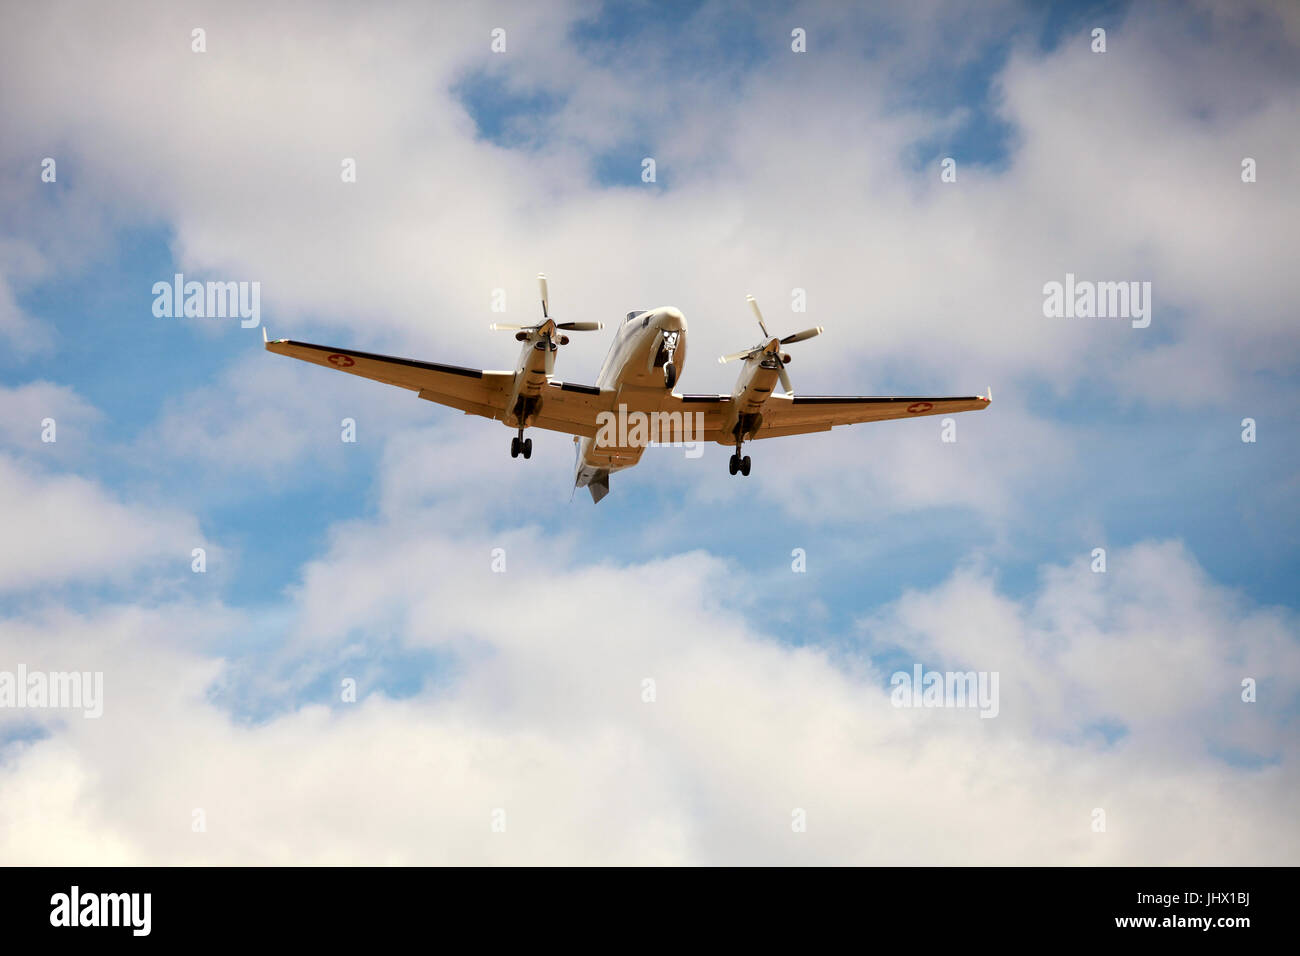 passenger aircraft landing at airport - Stock Image